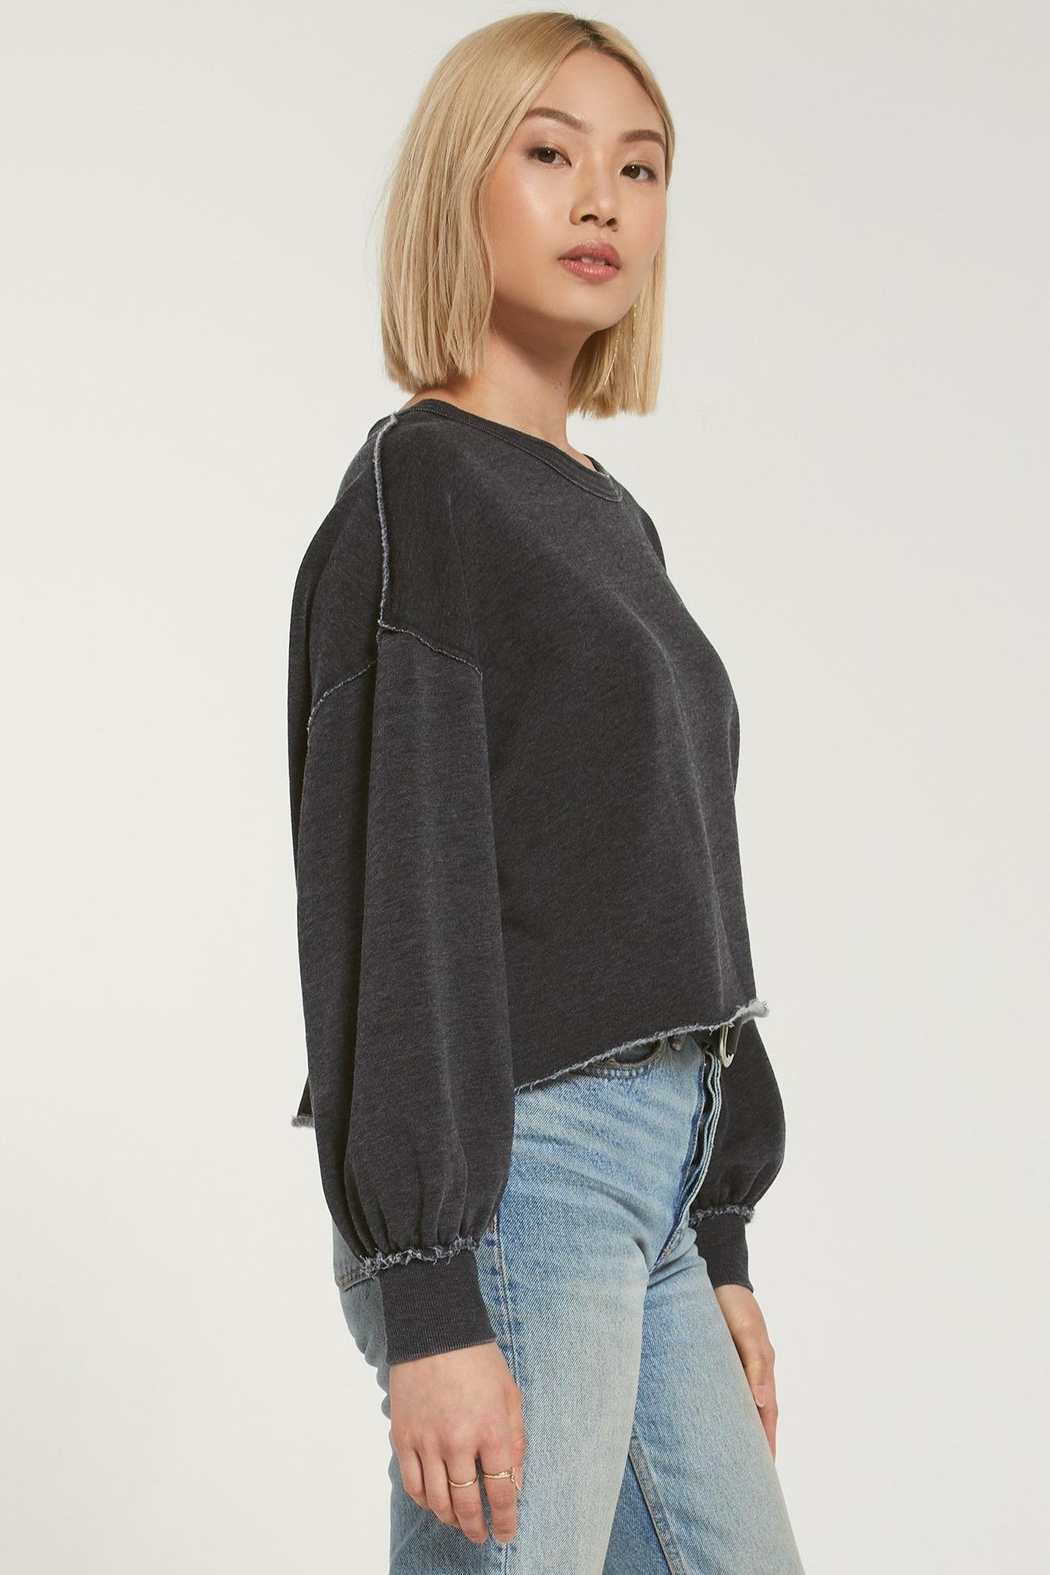 z supply Tempest Sweatshirt - Side Cropped Image